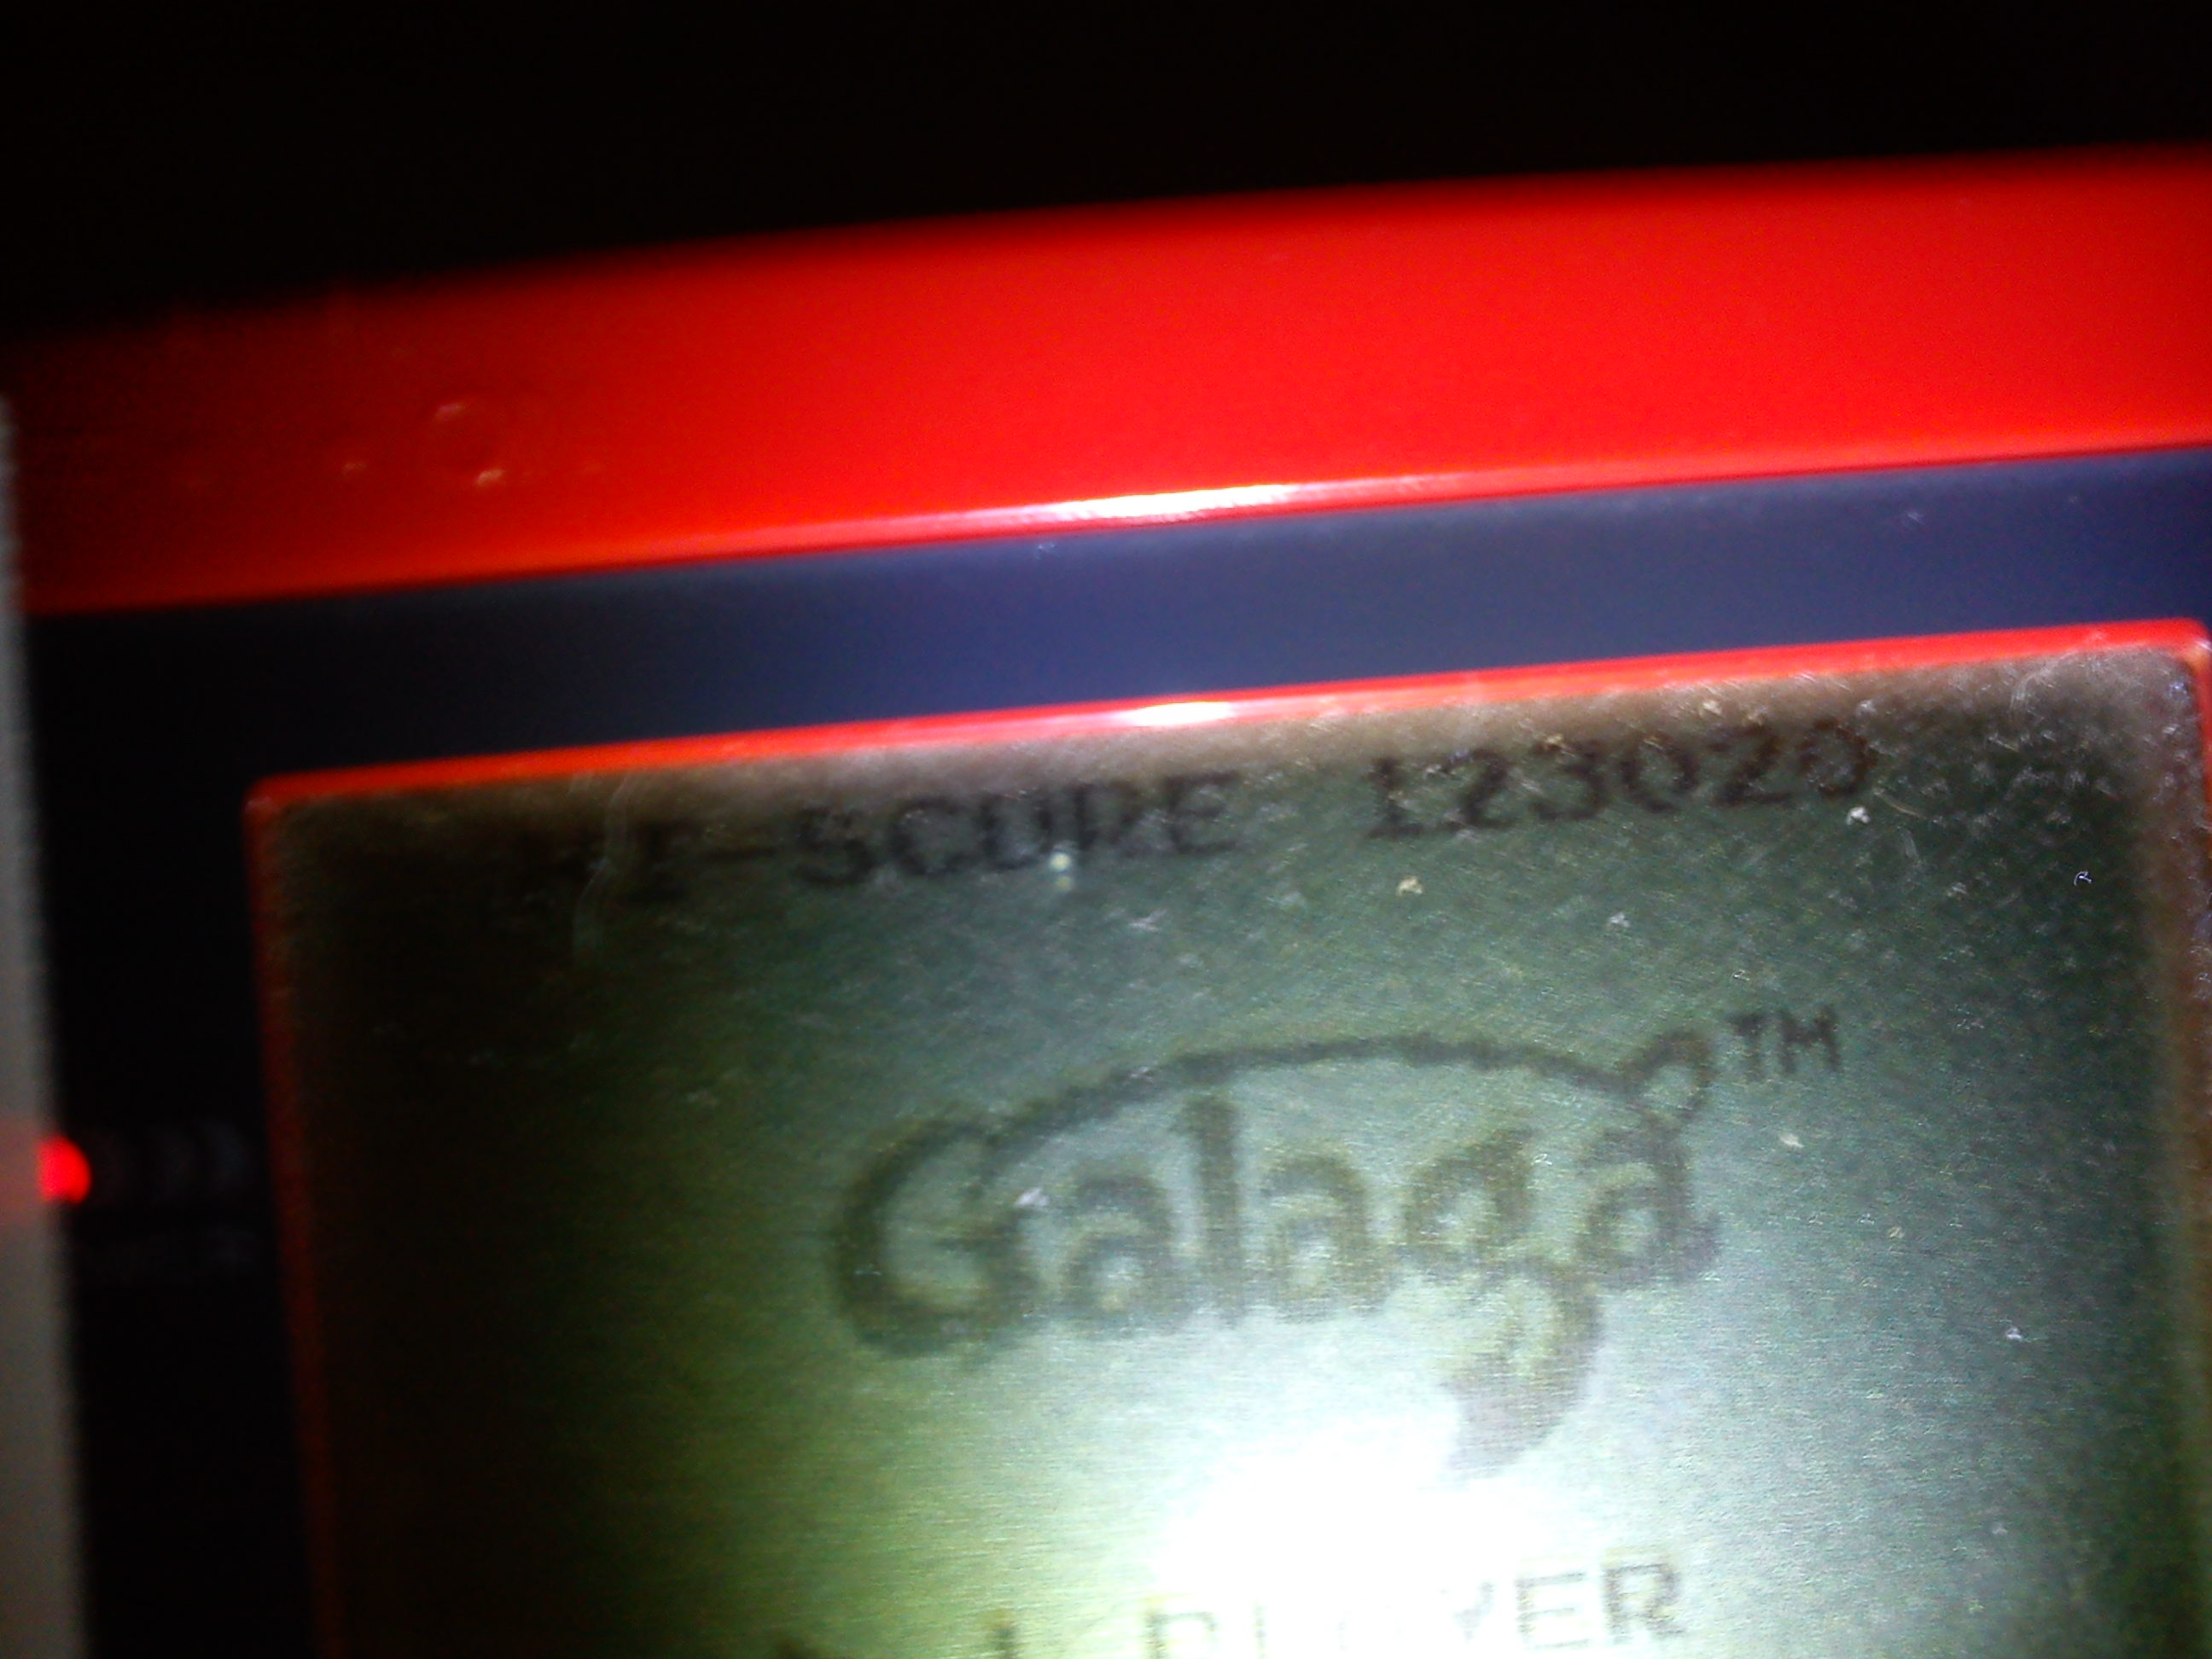 Galaga 123,020 points